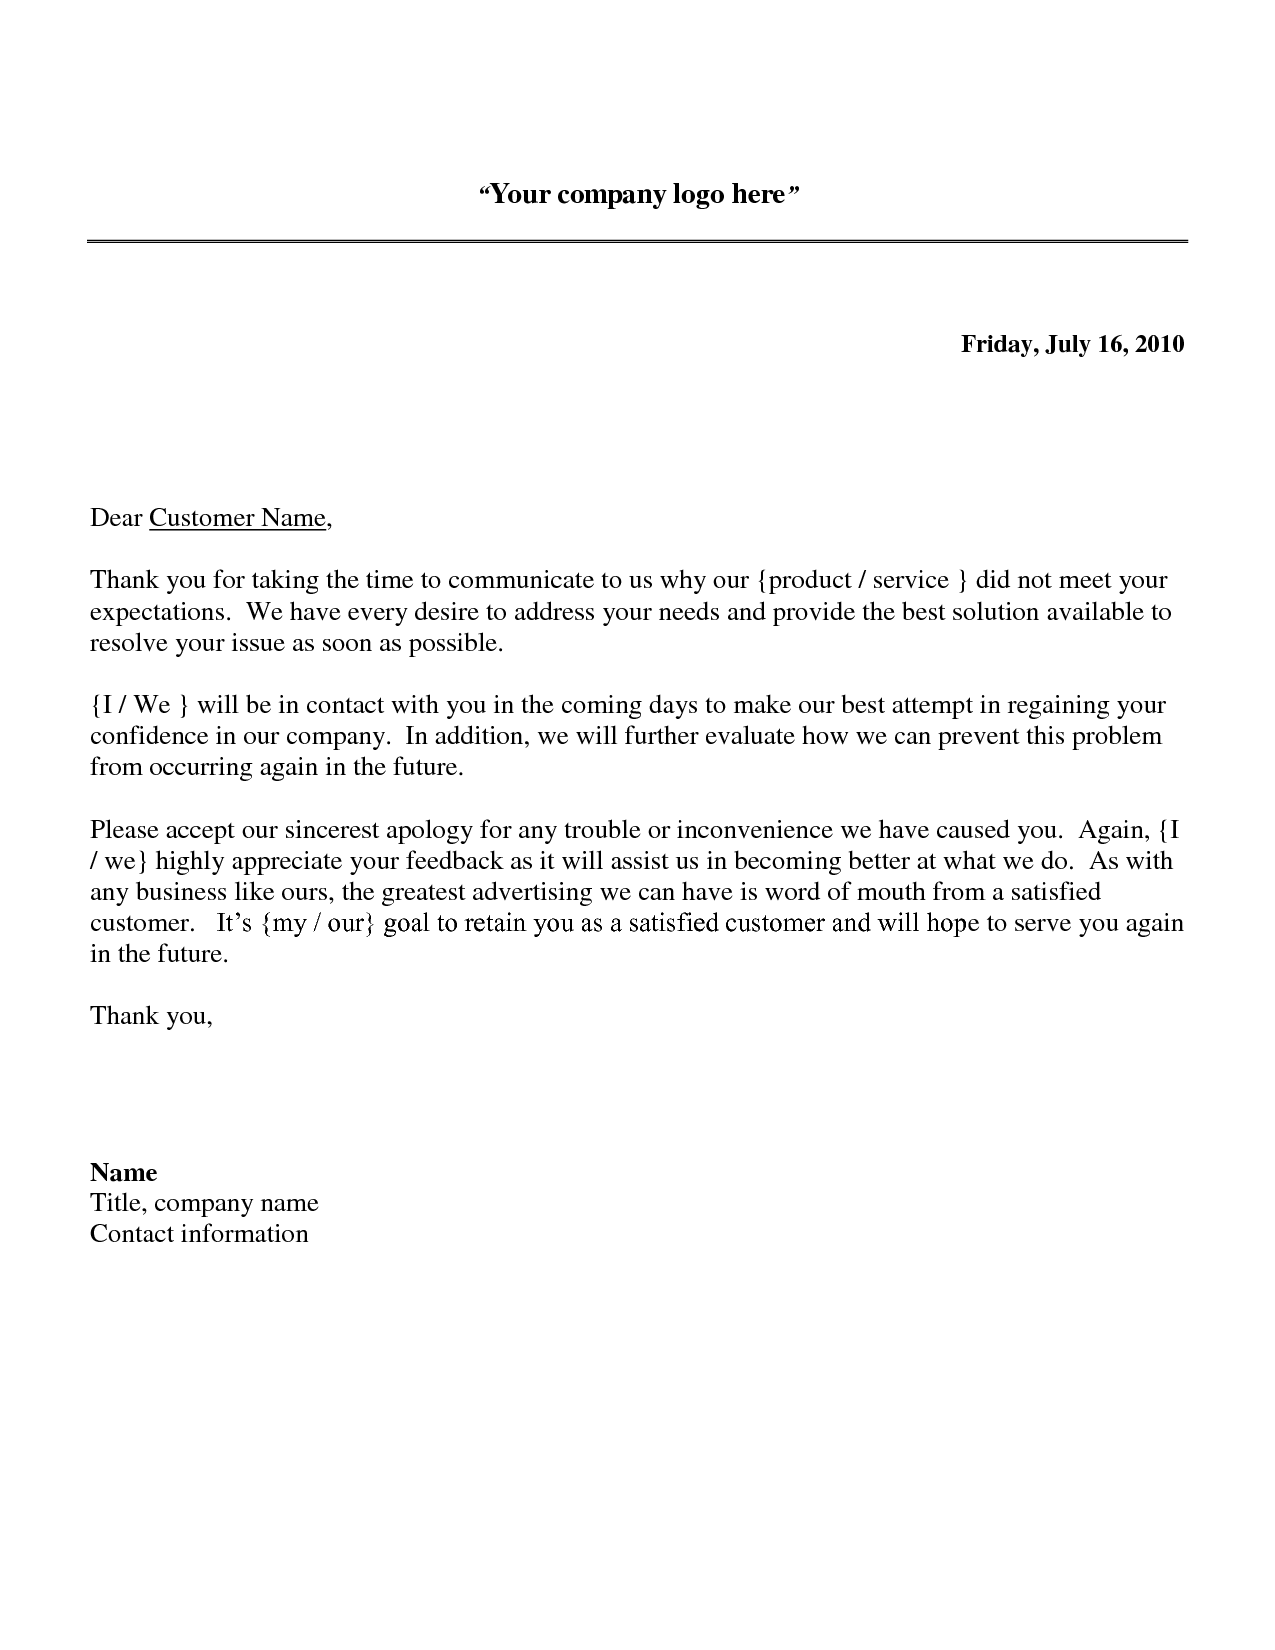 apology letter to customer for error | business letter template